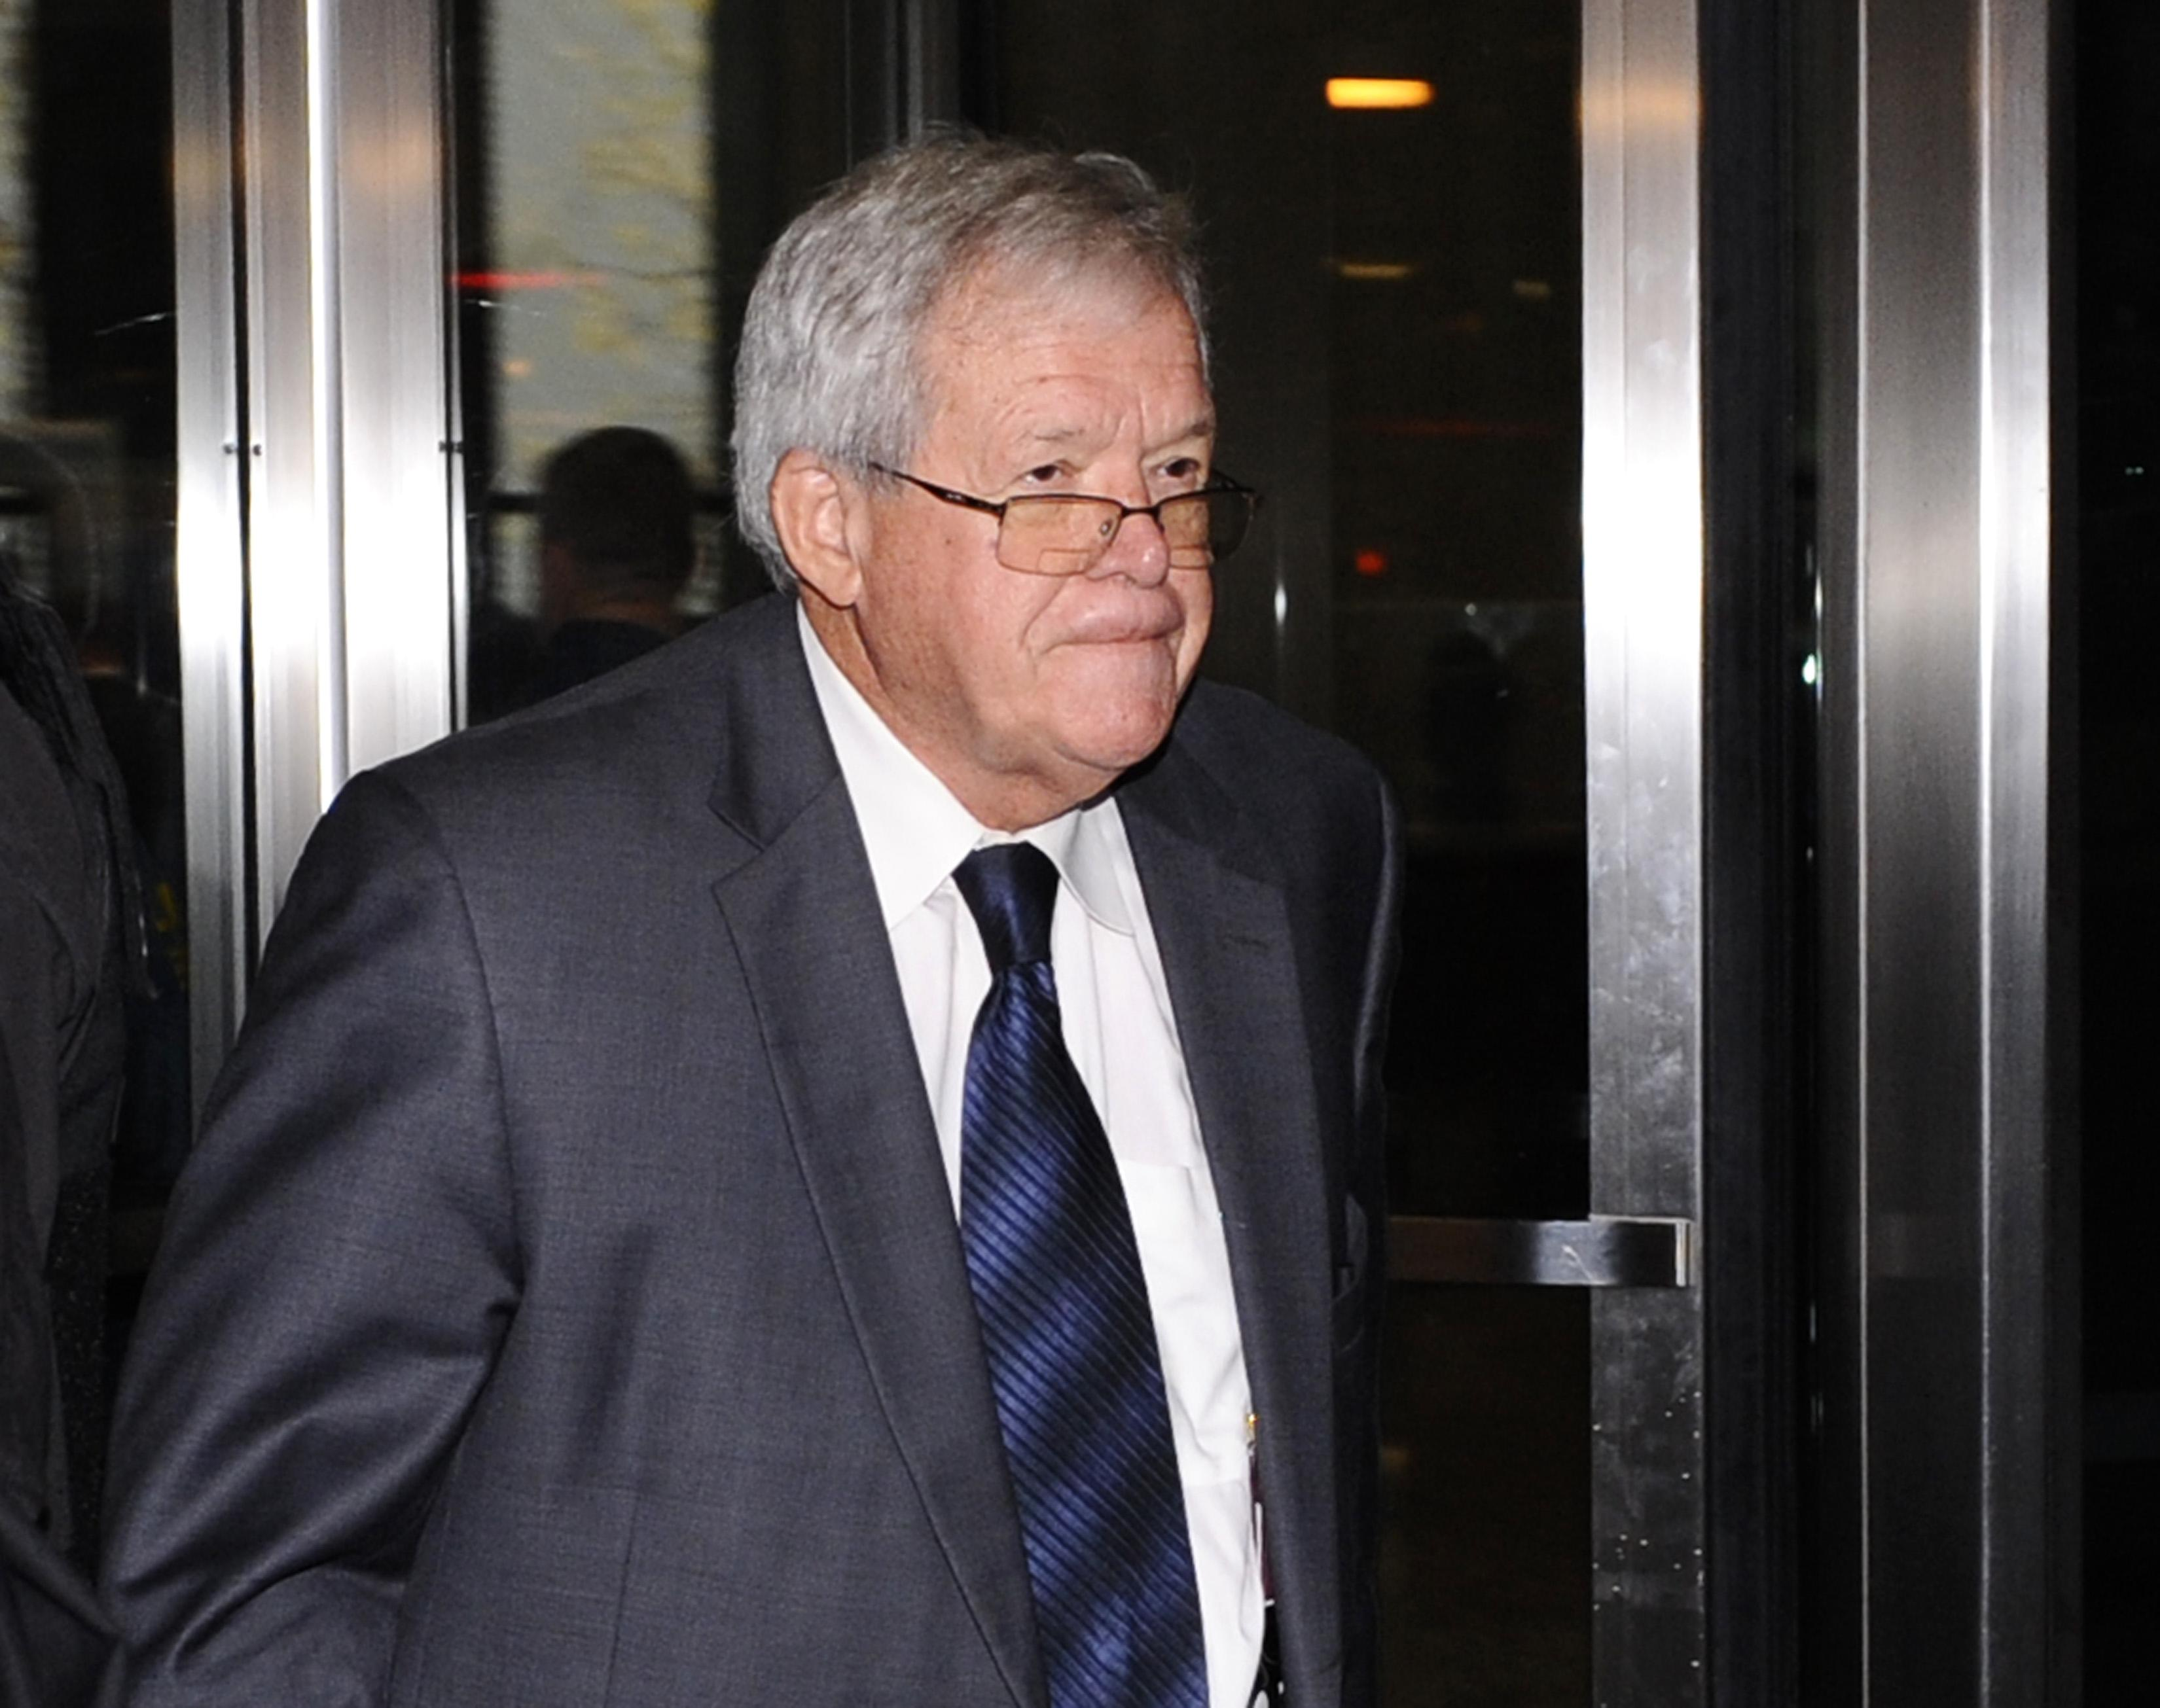 Dennis Hastert: a look back at the former House Speaker's career